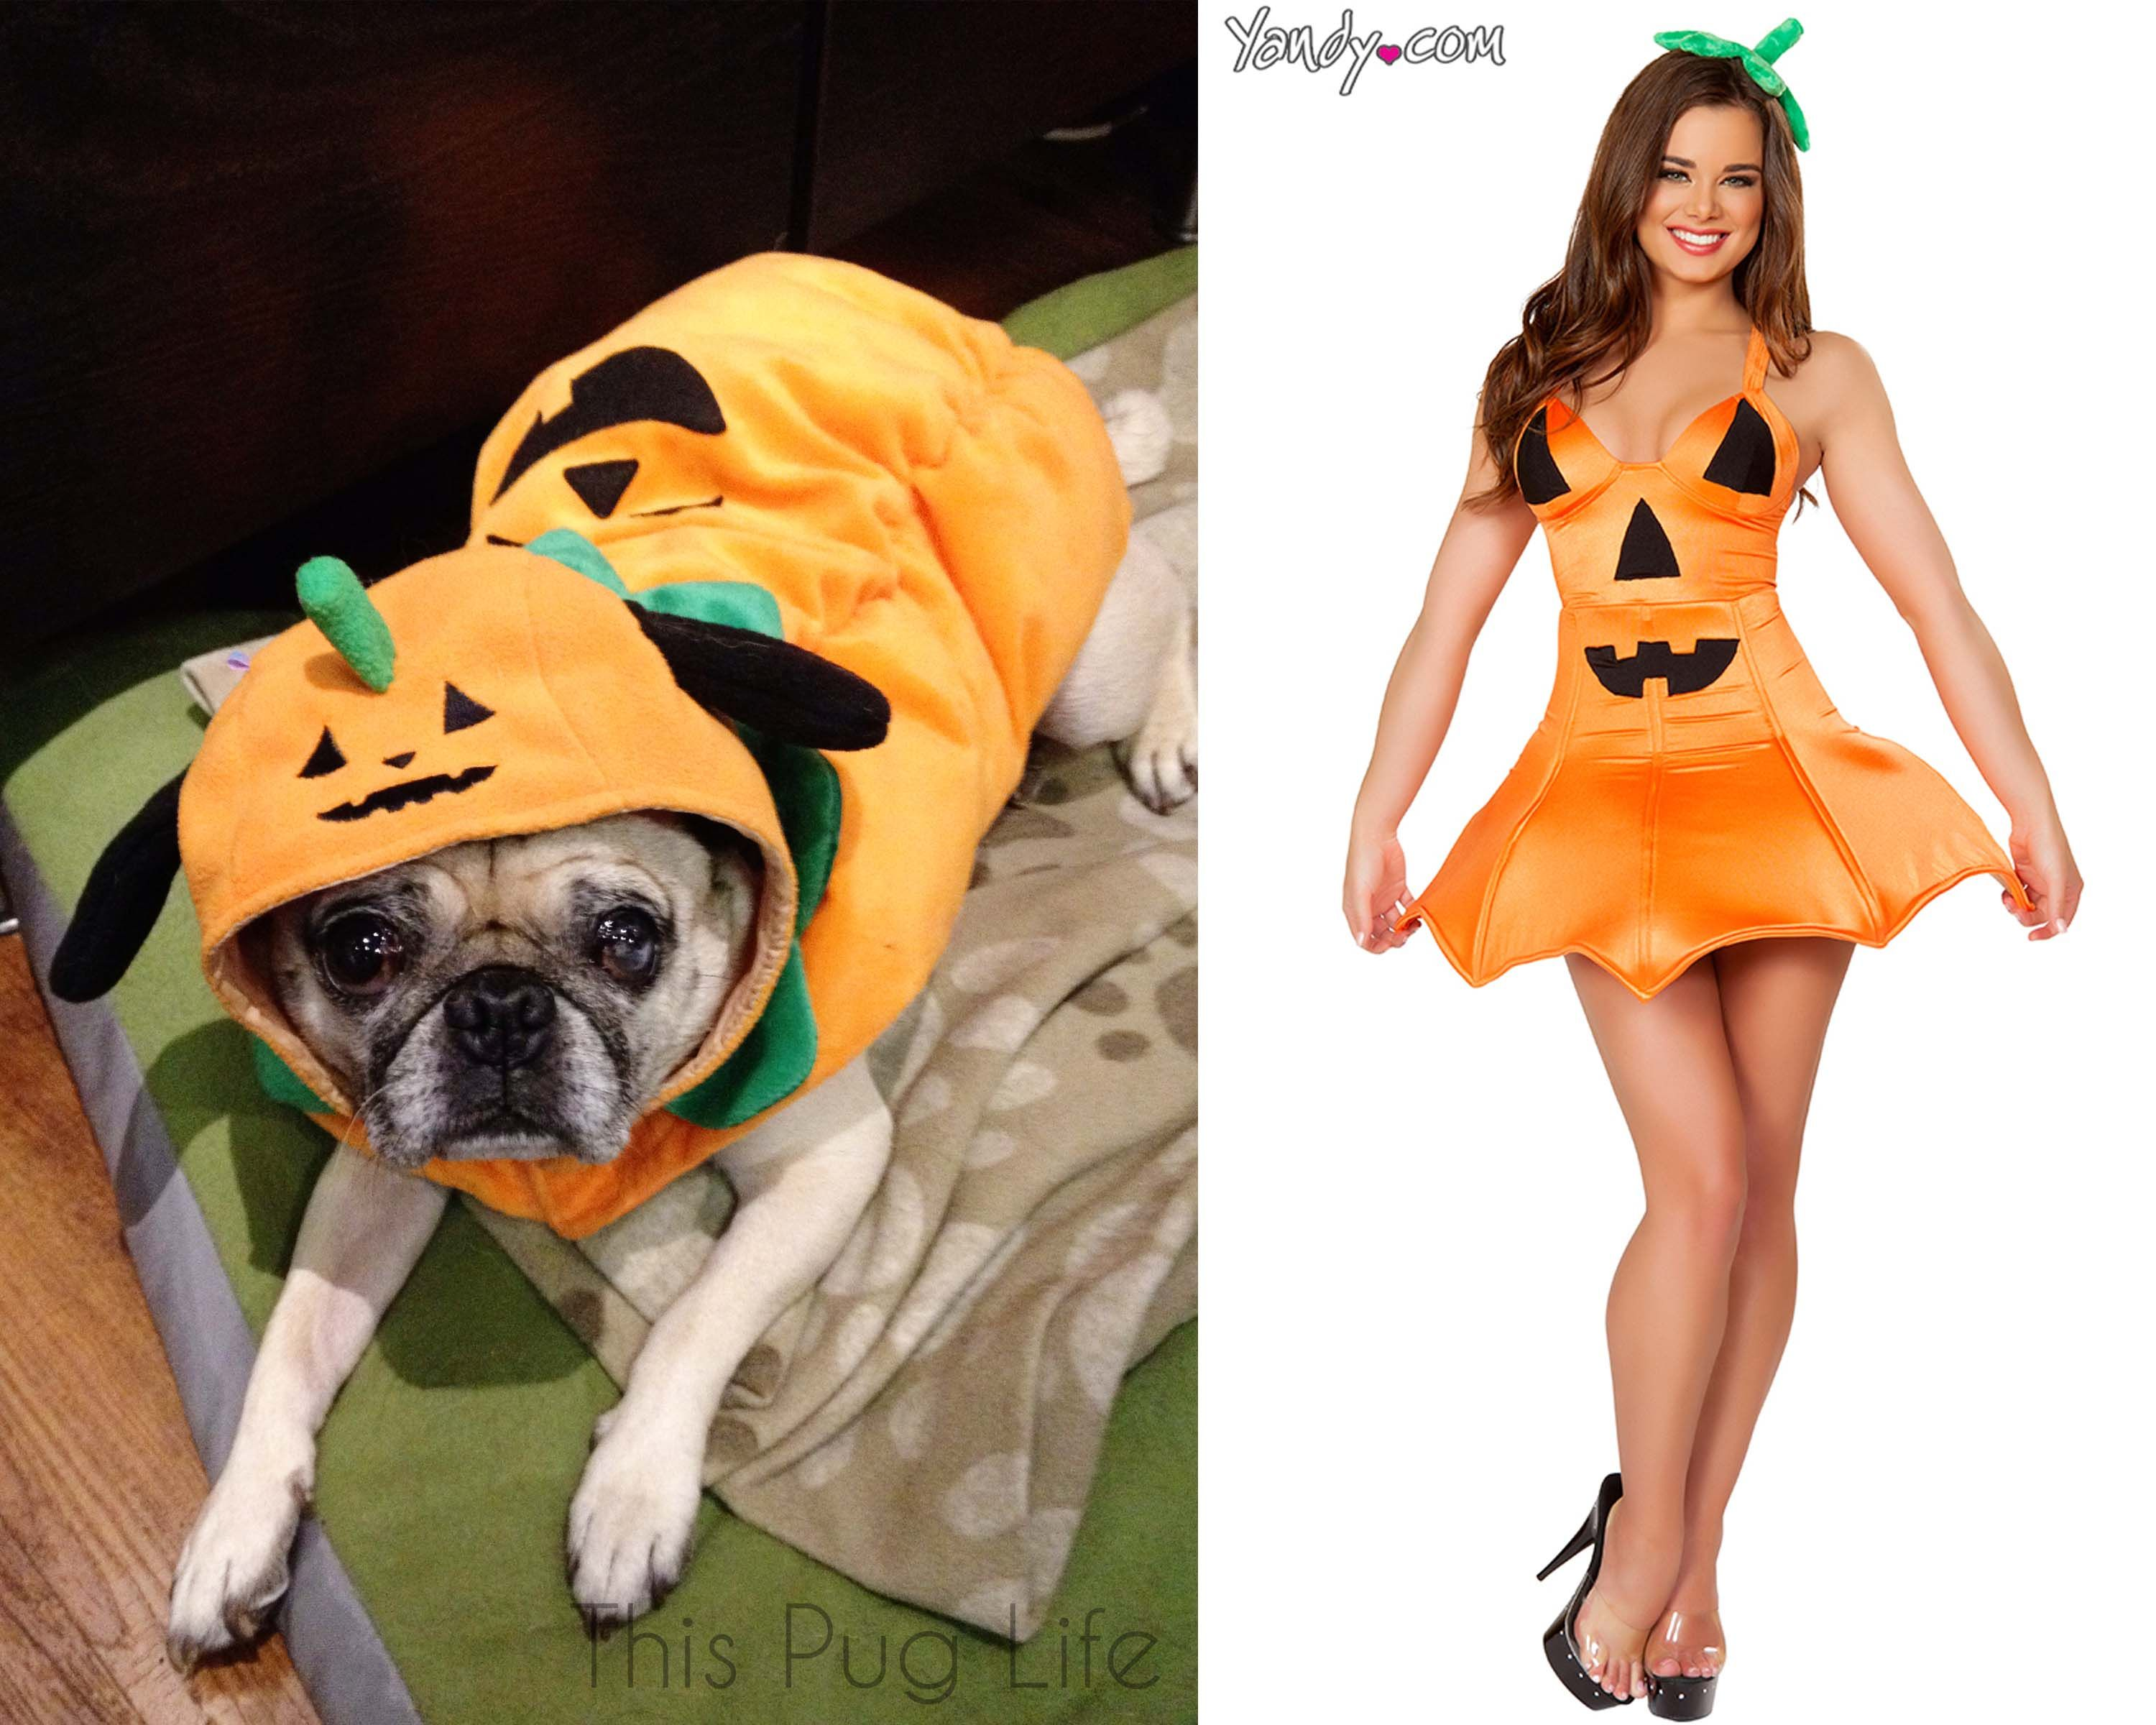 Who Wore It Best  Pug Costumes vs. Sexy Costume from ThisPugLife  sc 1 st  Pinterest & Who Wore It Best? Pug Costumes vs. Sexy Costumes   Pug costume Pug ...